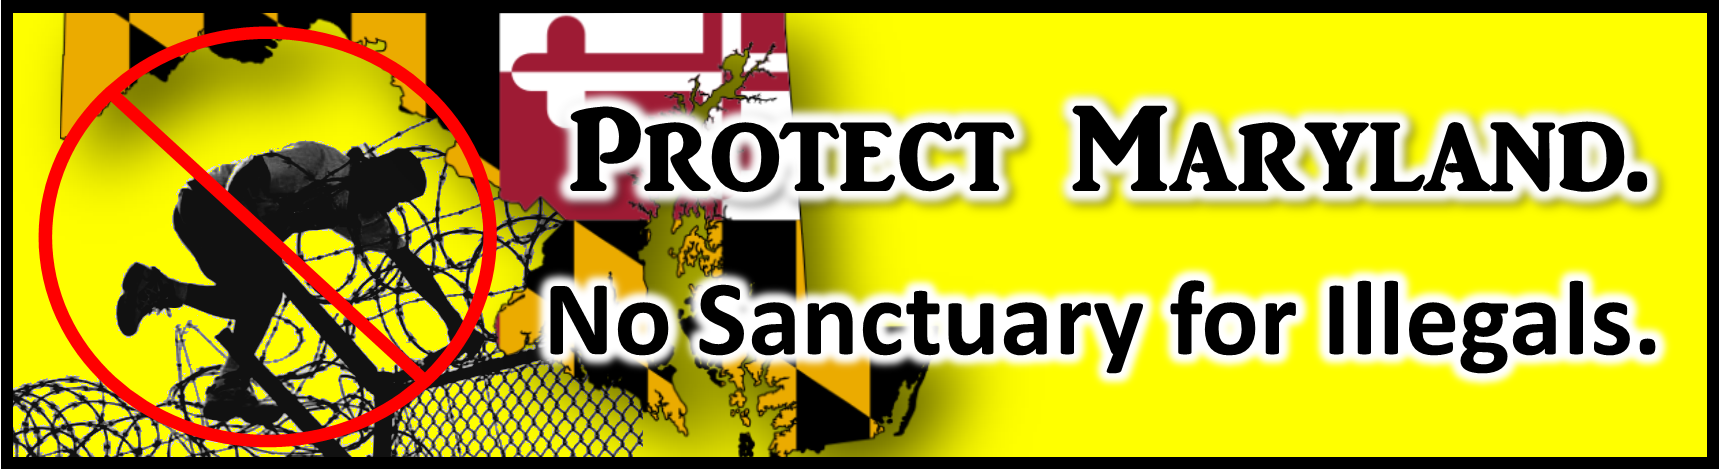 Prevent Maryland From Becoming a Sanctuary State